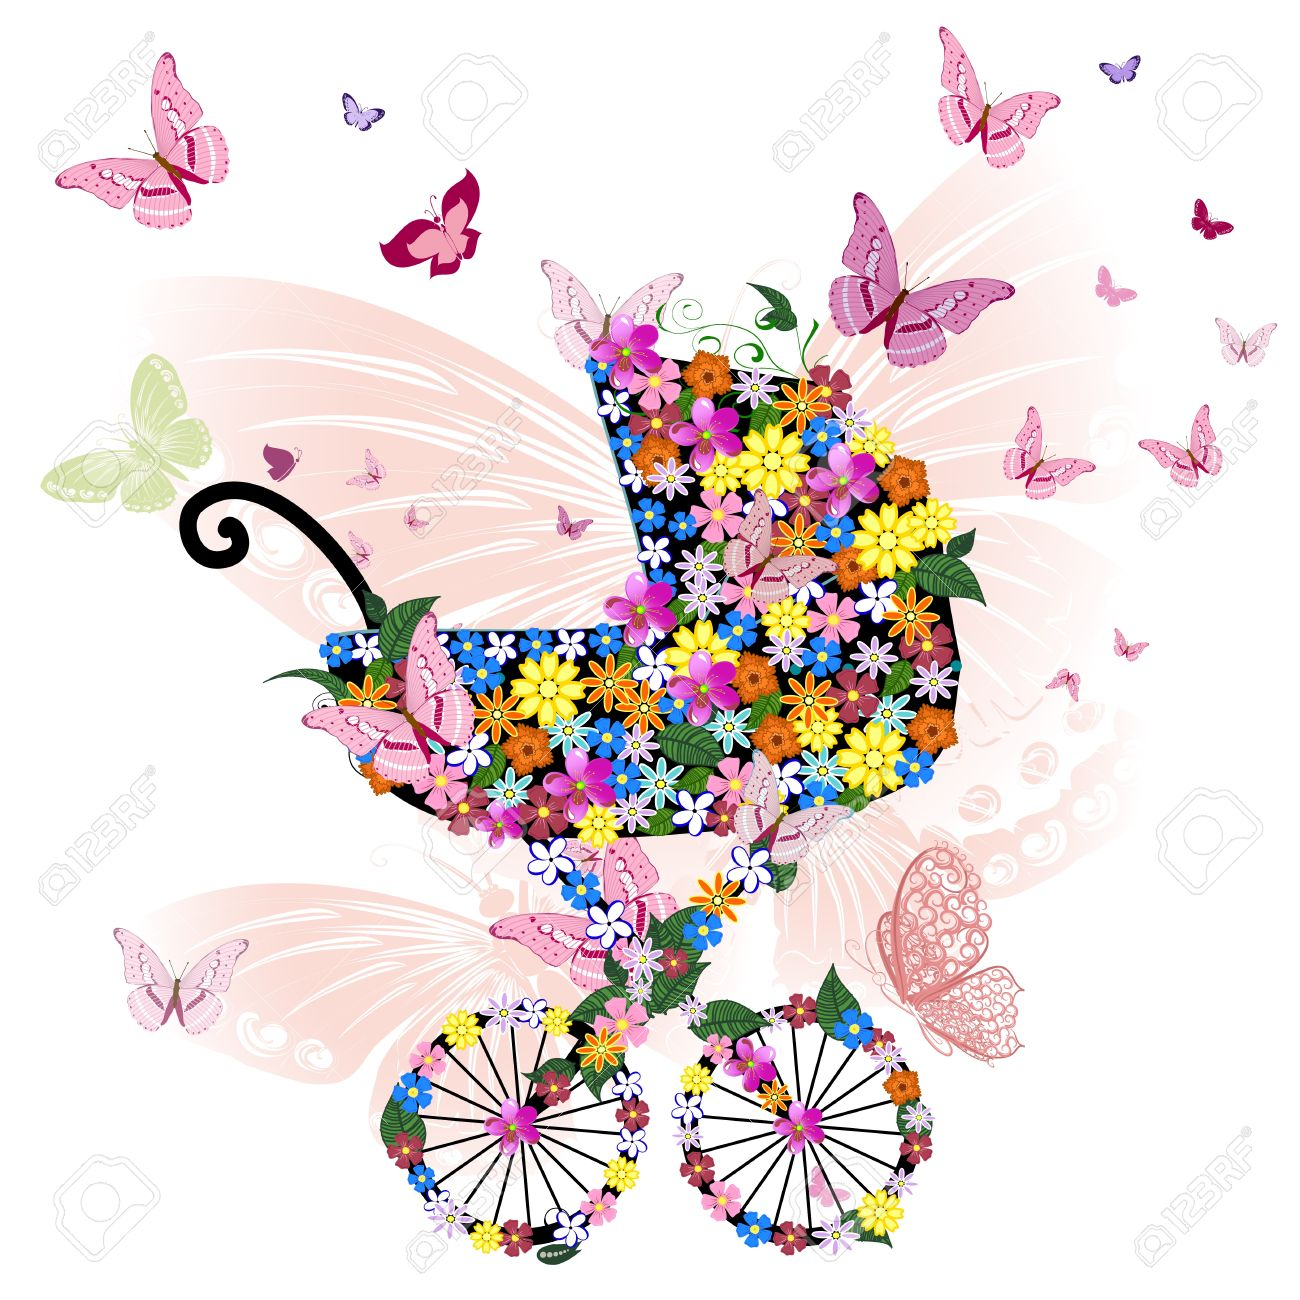 Stroller of flowers and butterflies Stock Vector - 10617307